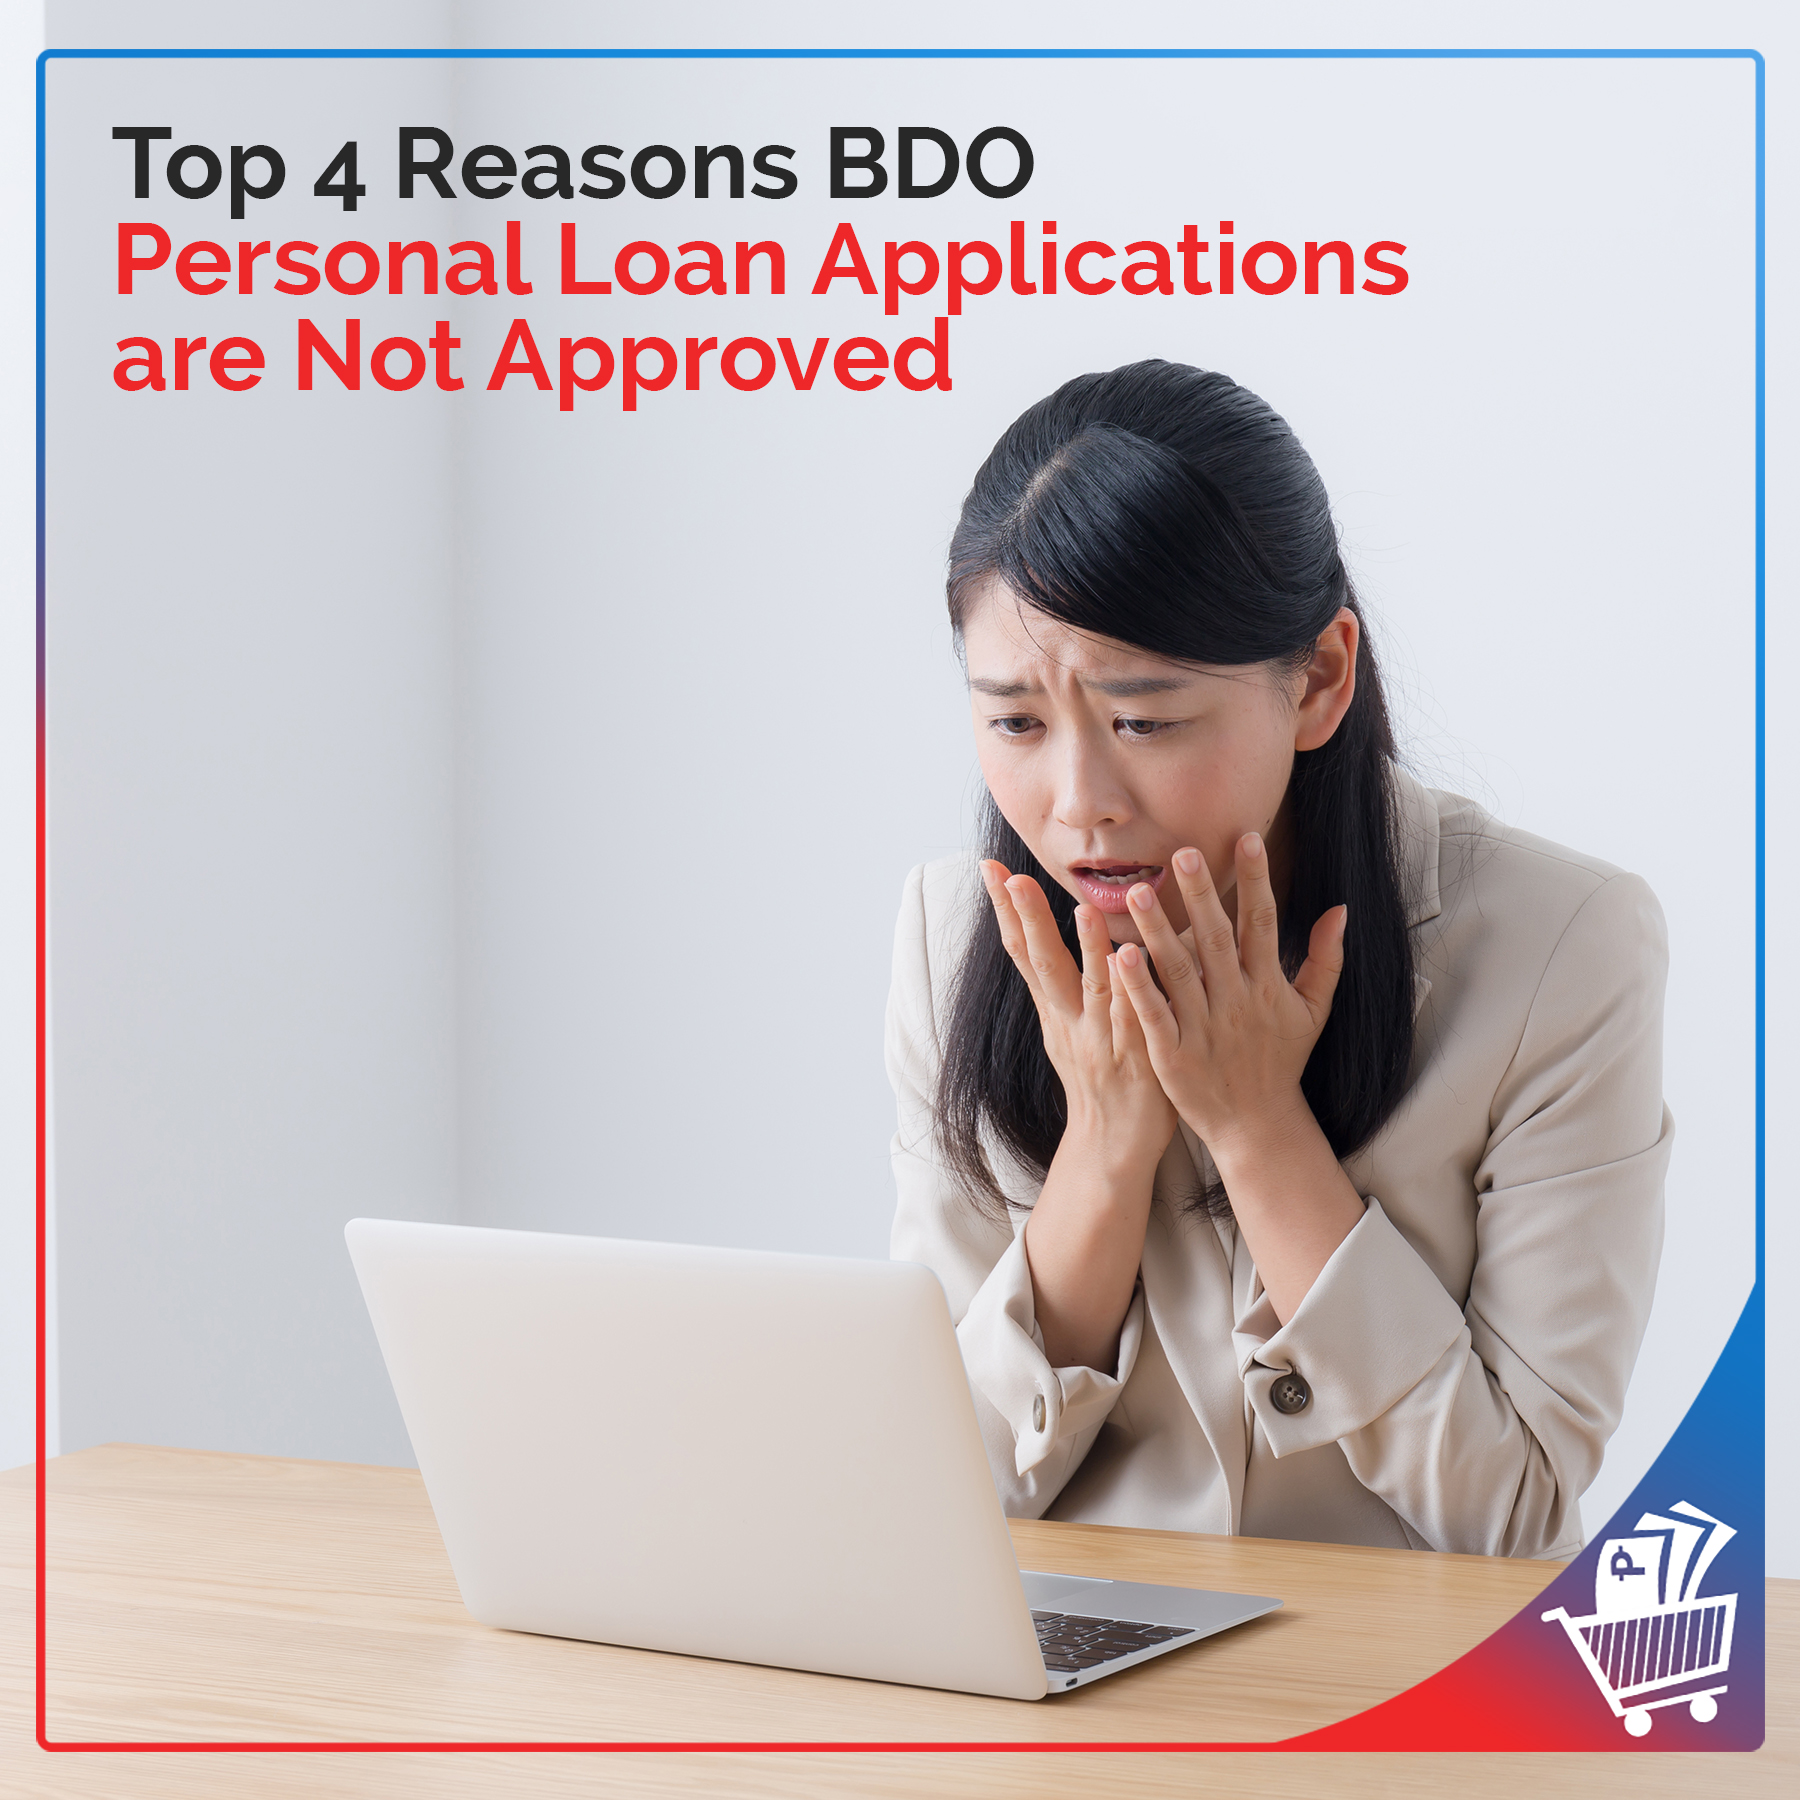 Top 4 Reasons Bdo Personal Loan Applications Are Not Approved